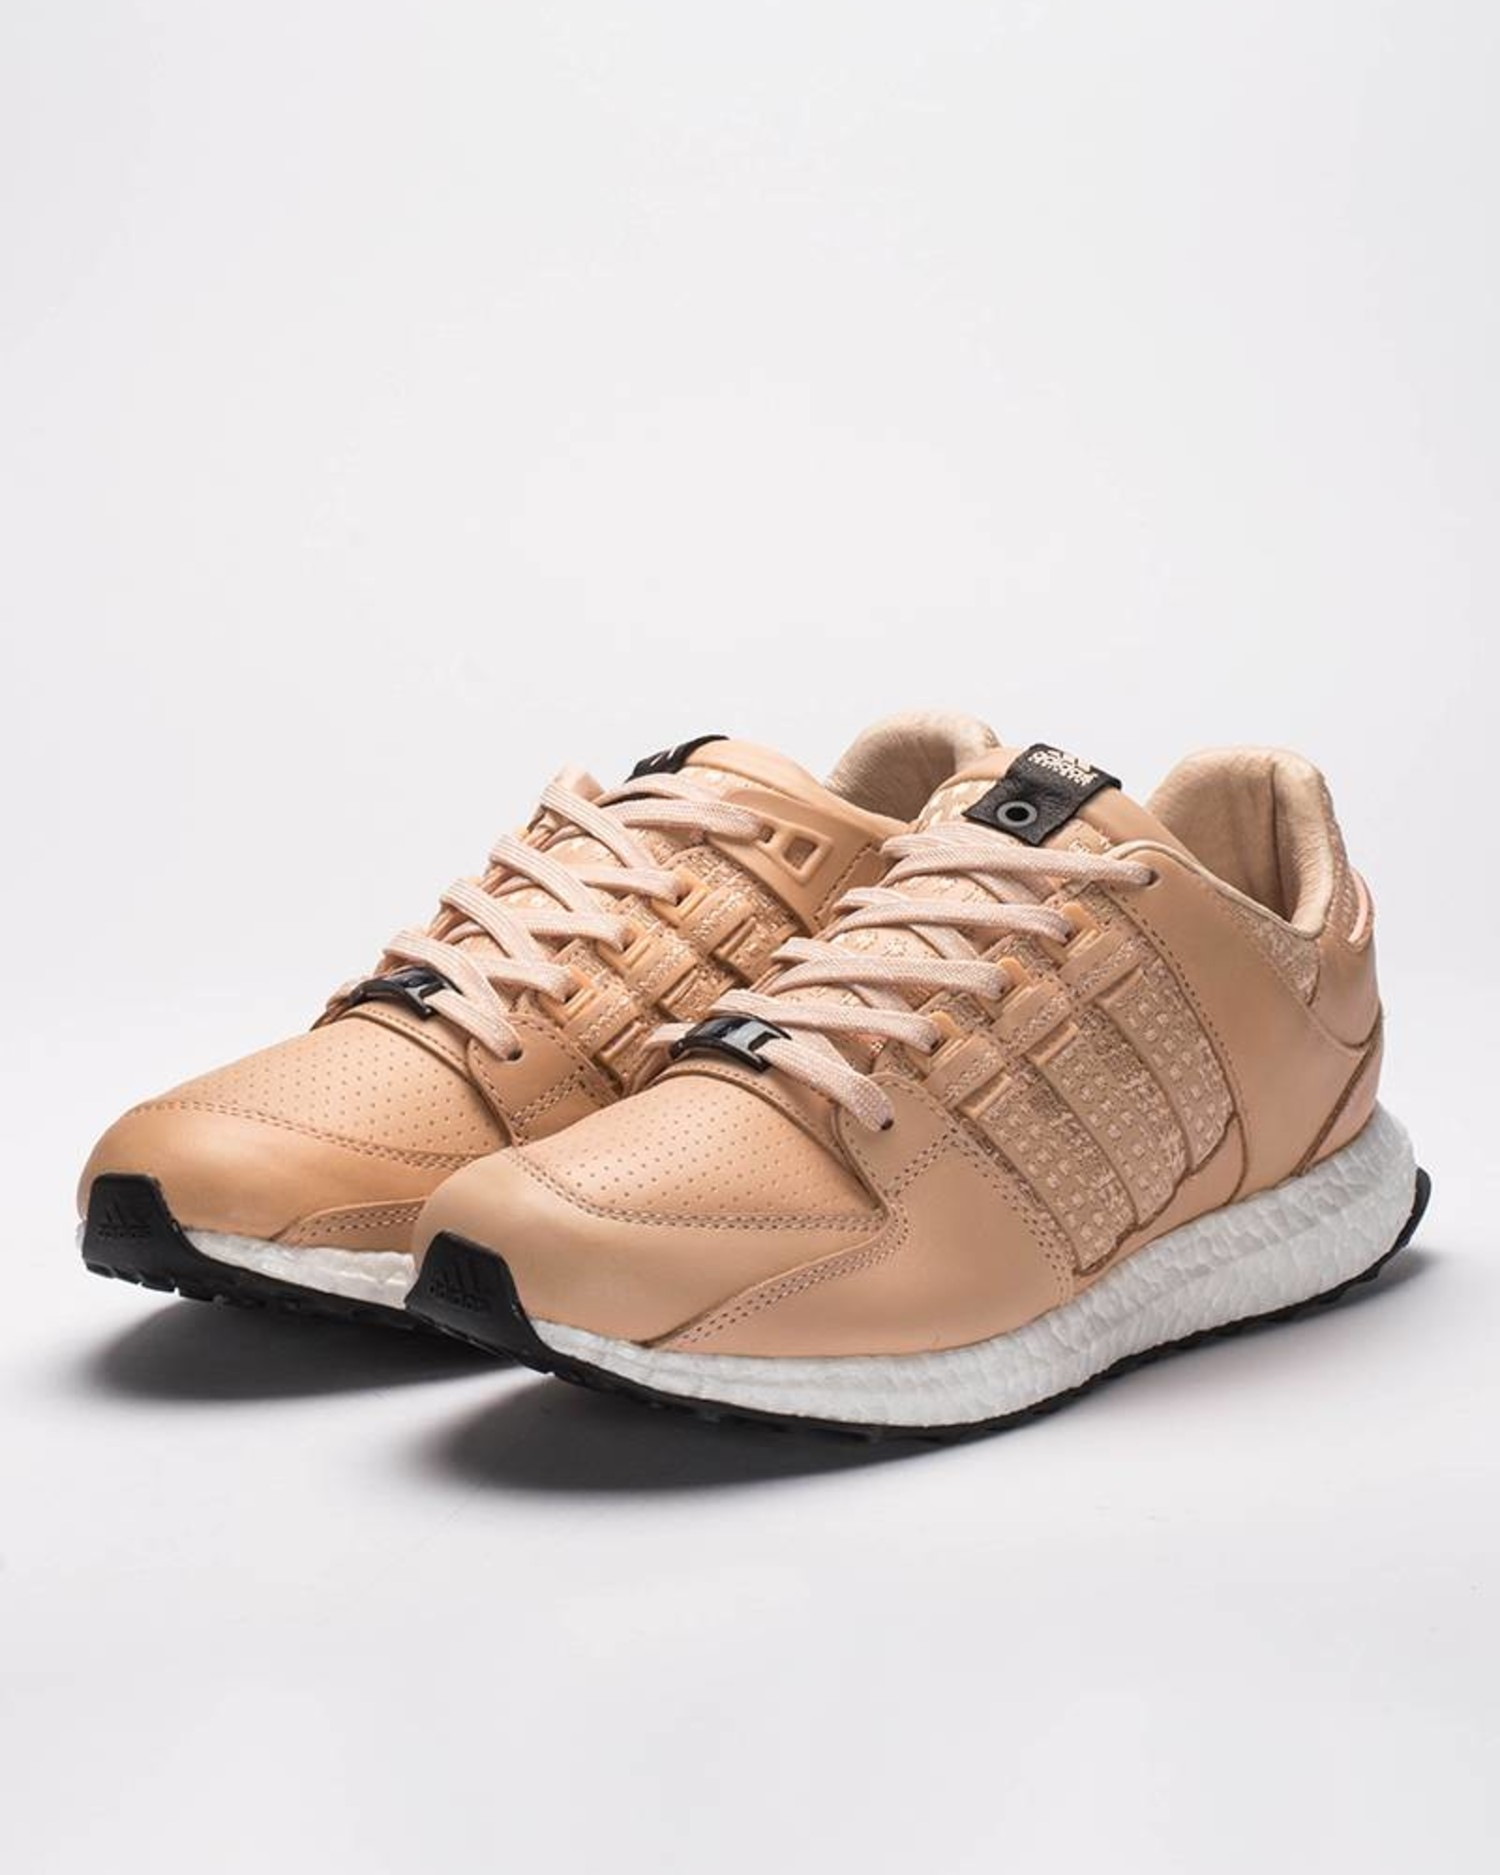 huge selection of ca23b 719d8 Adidas Adidas consortium x Avenue eqt support 93/16 tan/white